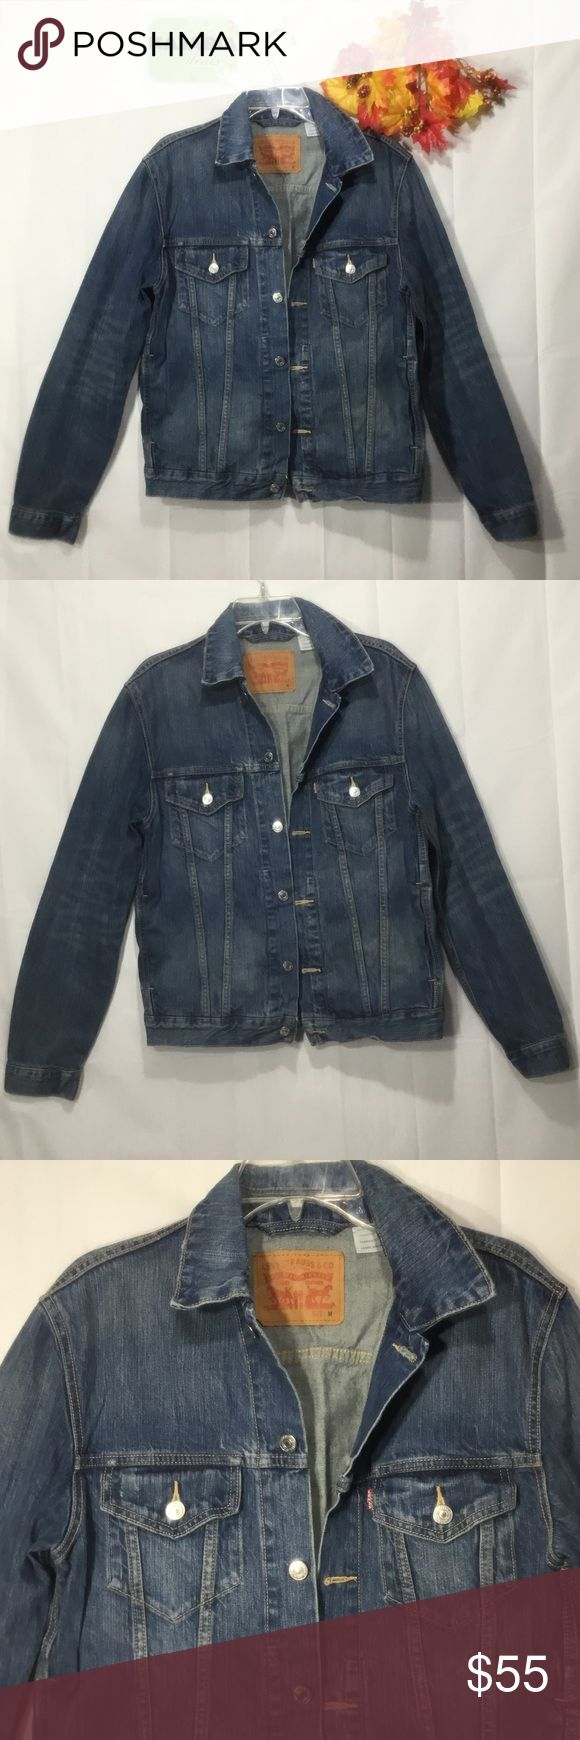 Levi Strauss & Co. Jean Jacket. Size M Levi's Denim Jackets. Size M. I think is men's... I just like the way this fits better. 100% cotton.  Pre owned. In perfect condition. No rips. No spots. Original. Can be worn by Men/Women Levi Strauss &. Co Jackets & Coats Jean Jackets